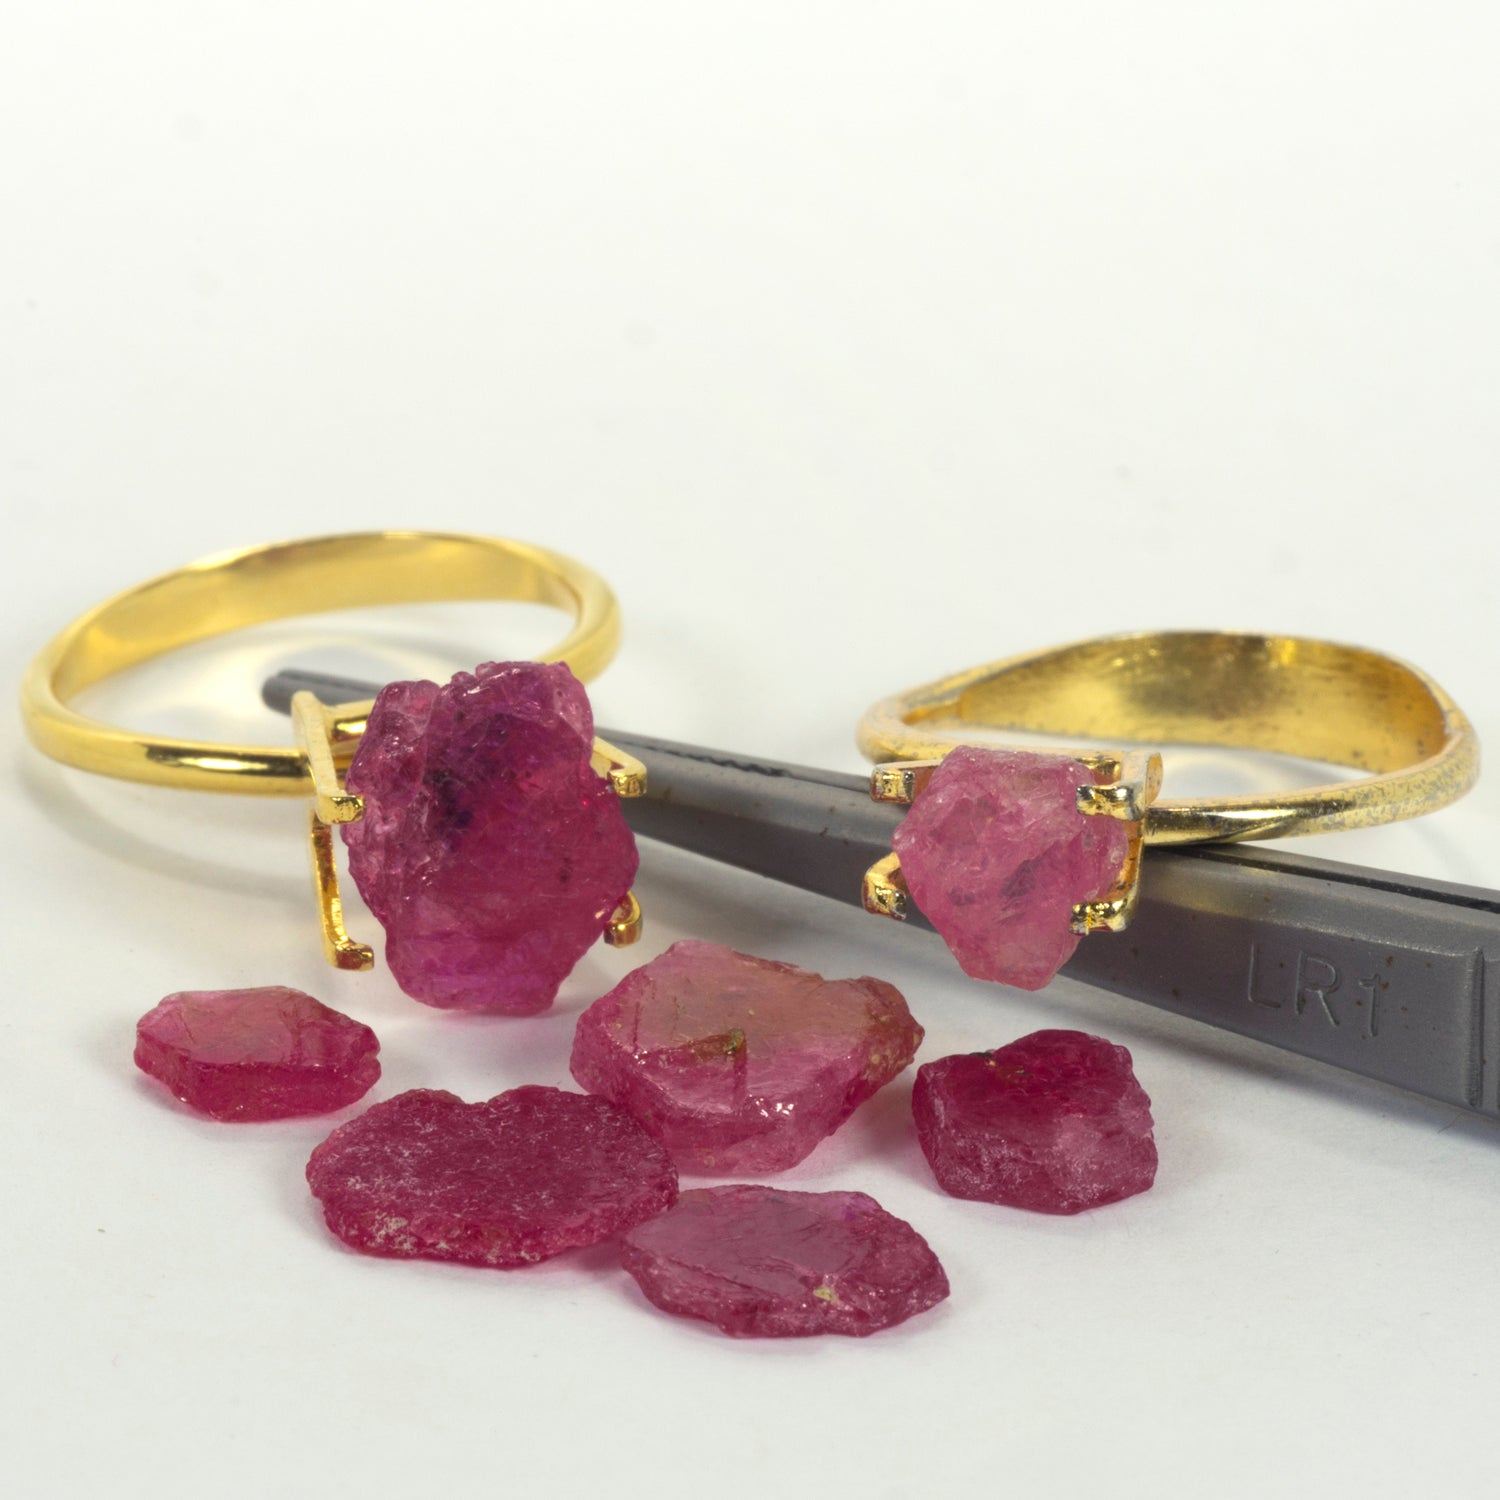 15.51ct Capstone Ruby/Pink Sapphire Crystal Rough Parcel